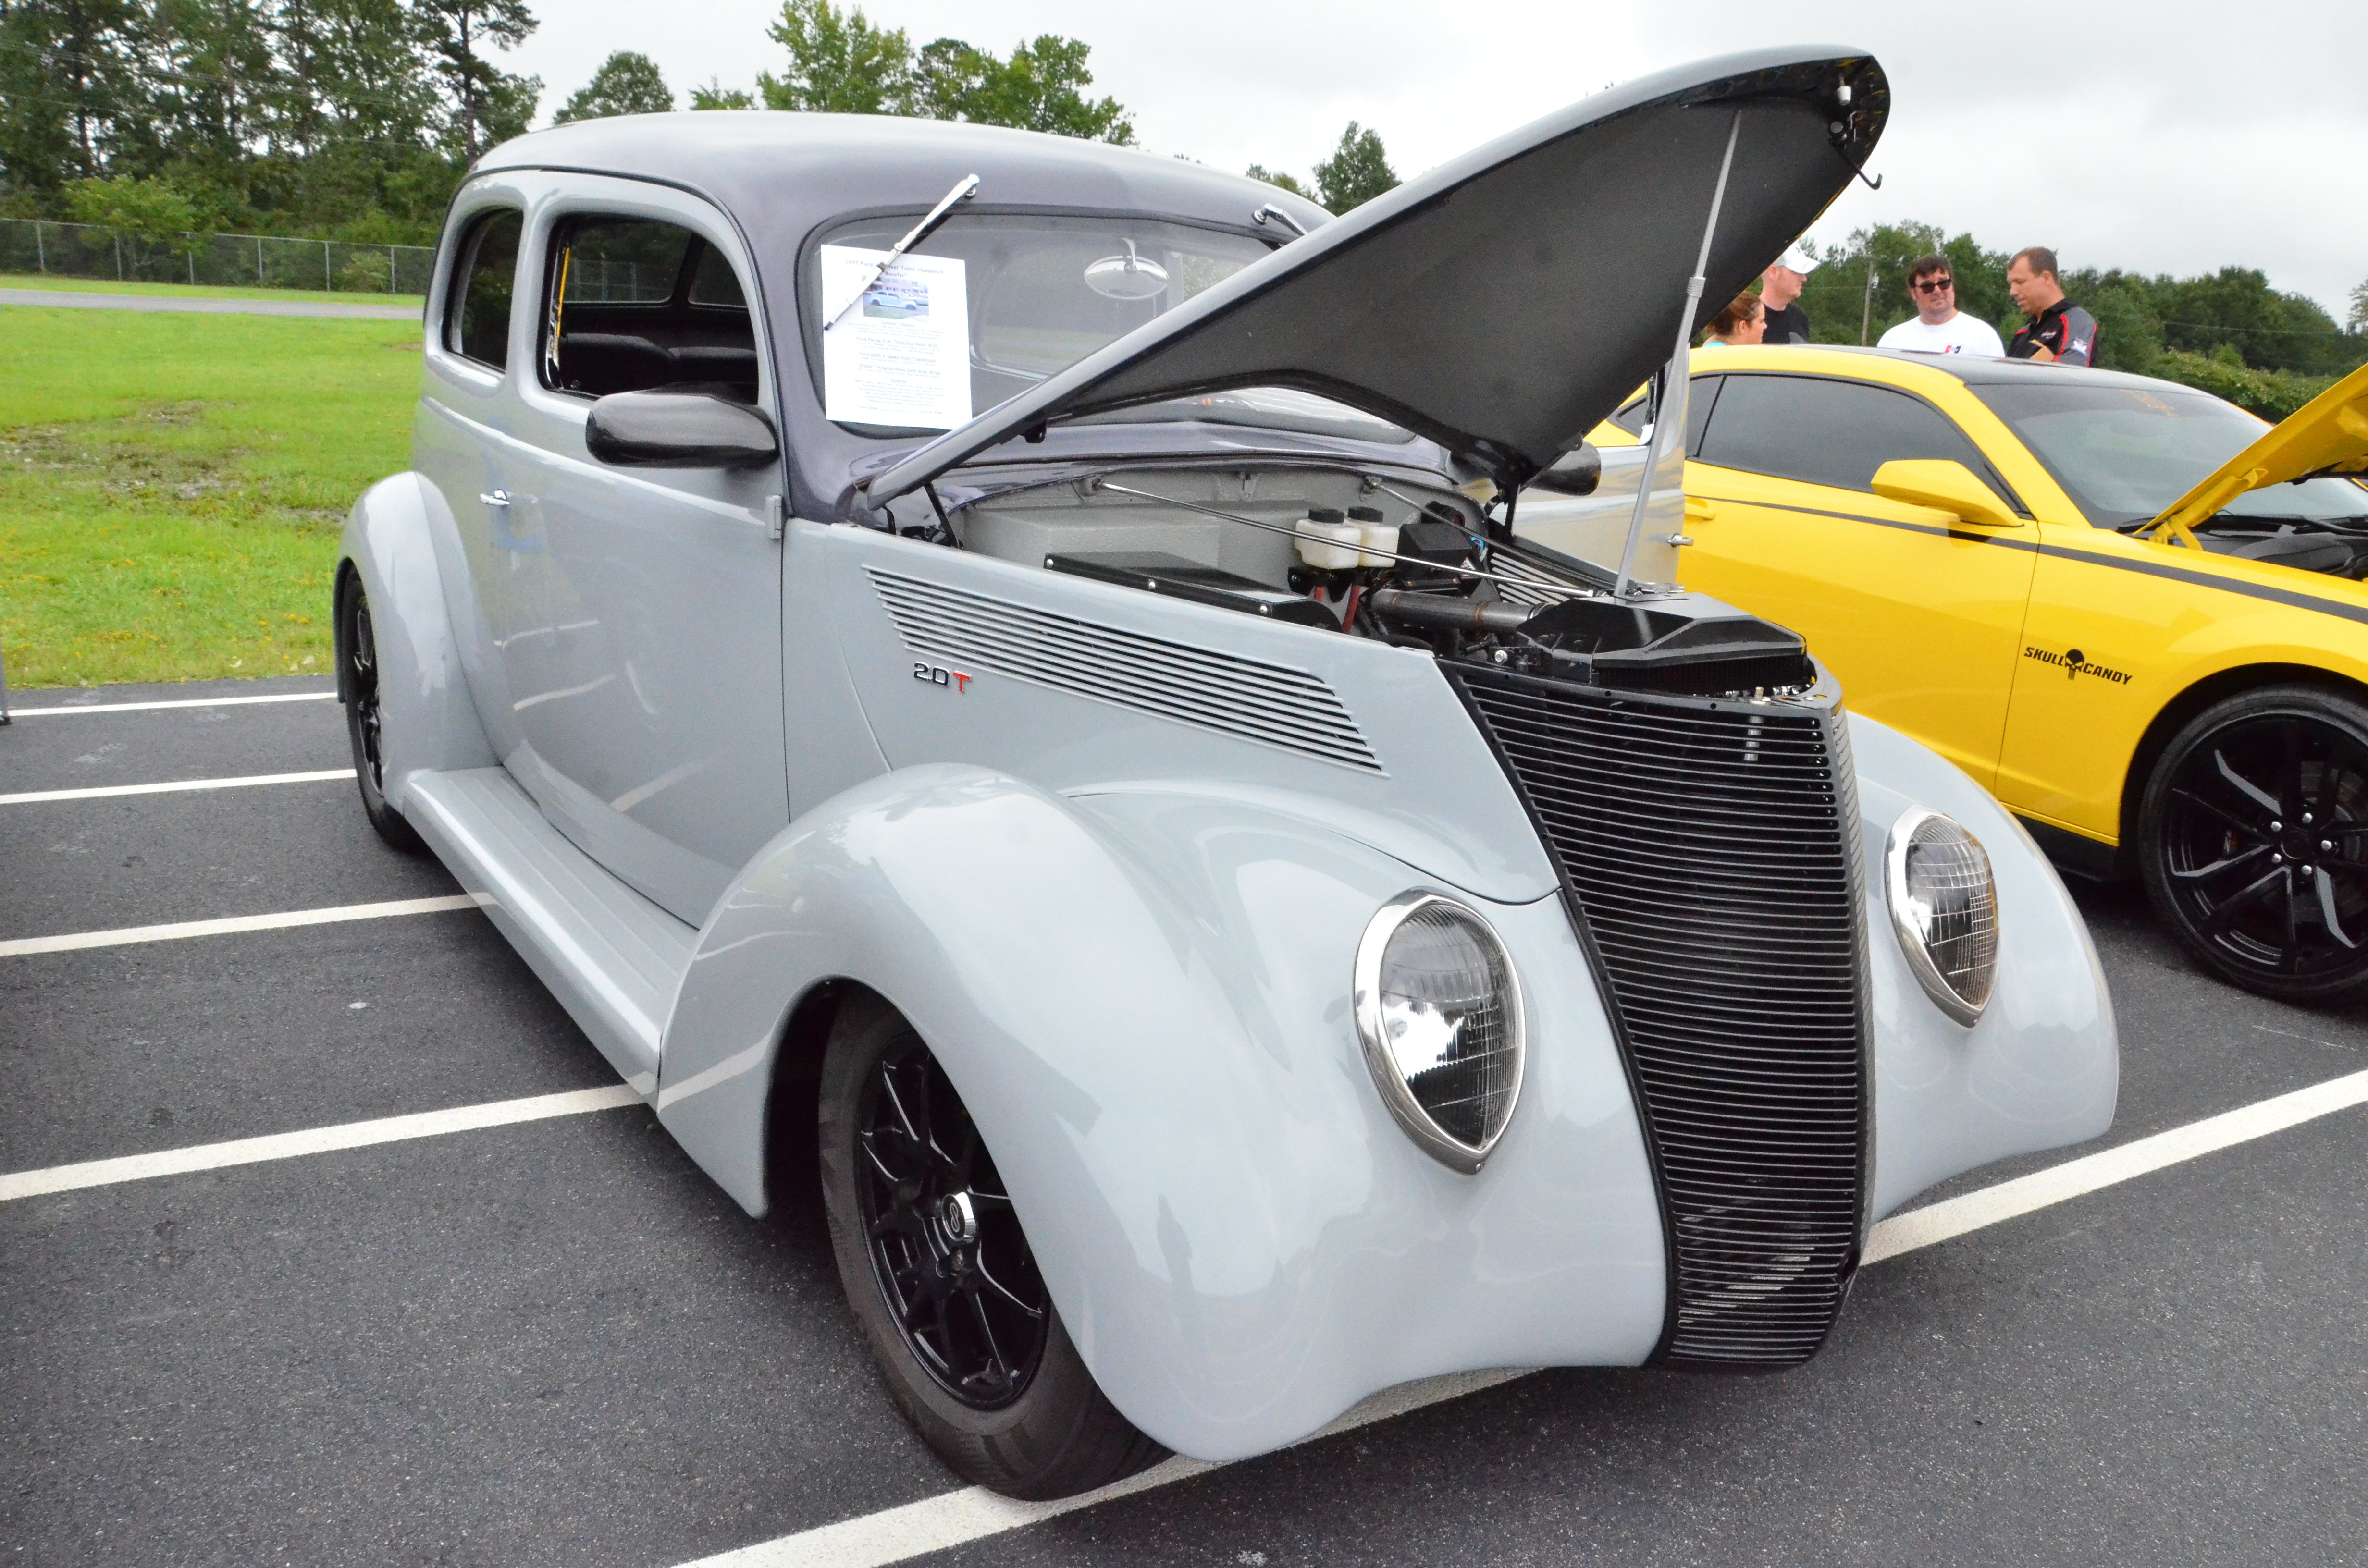 1937 Ford Sedan Dares To Be Different With EcoBoost Power